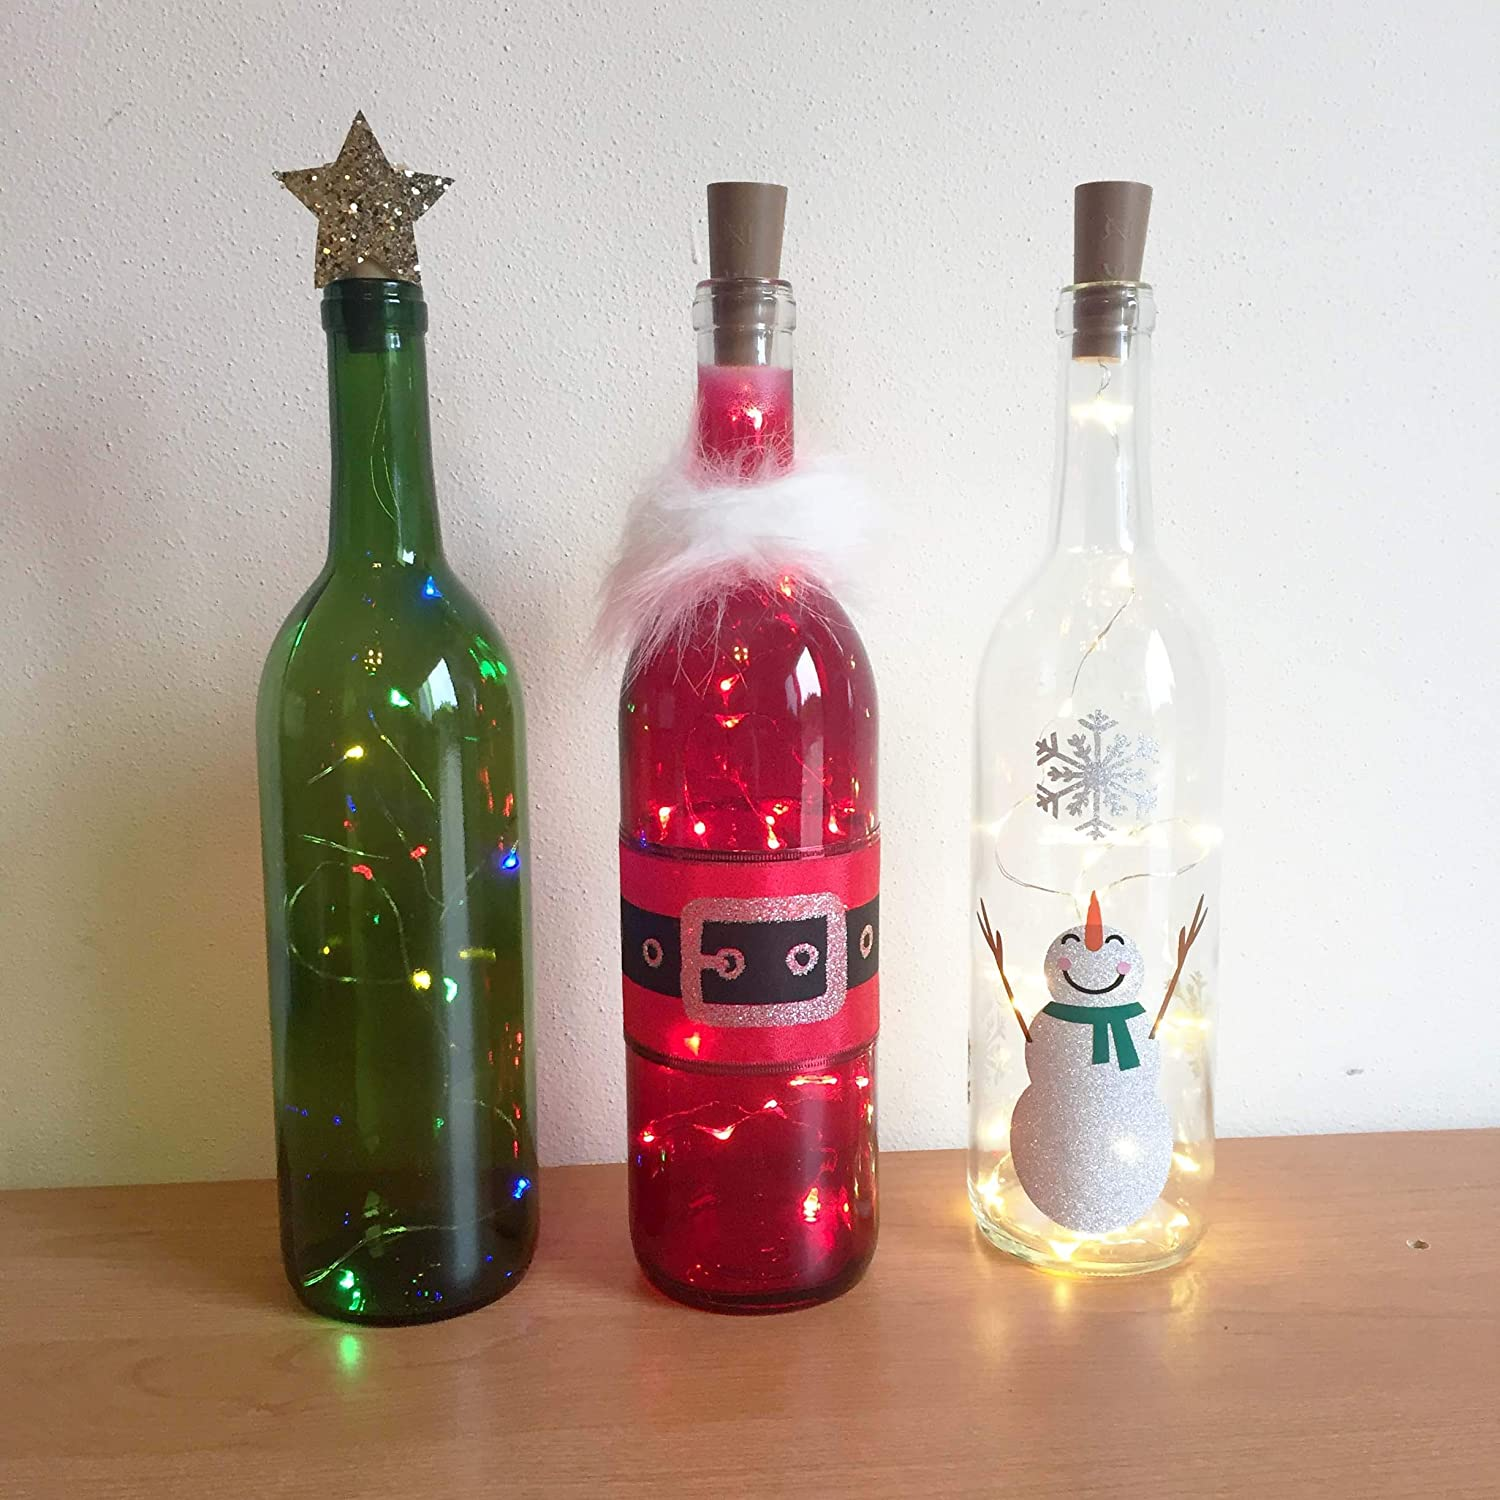 Wine Bottle Christmas Tree Craft.Holiday Wine Bottle Decorations With Lights Santa Snowman Christmas Tree Wine Bottle Decor Wine Bottle Crafts Holiday Decorations